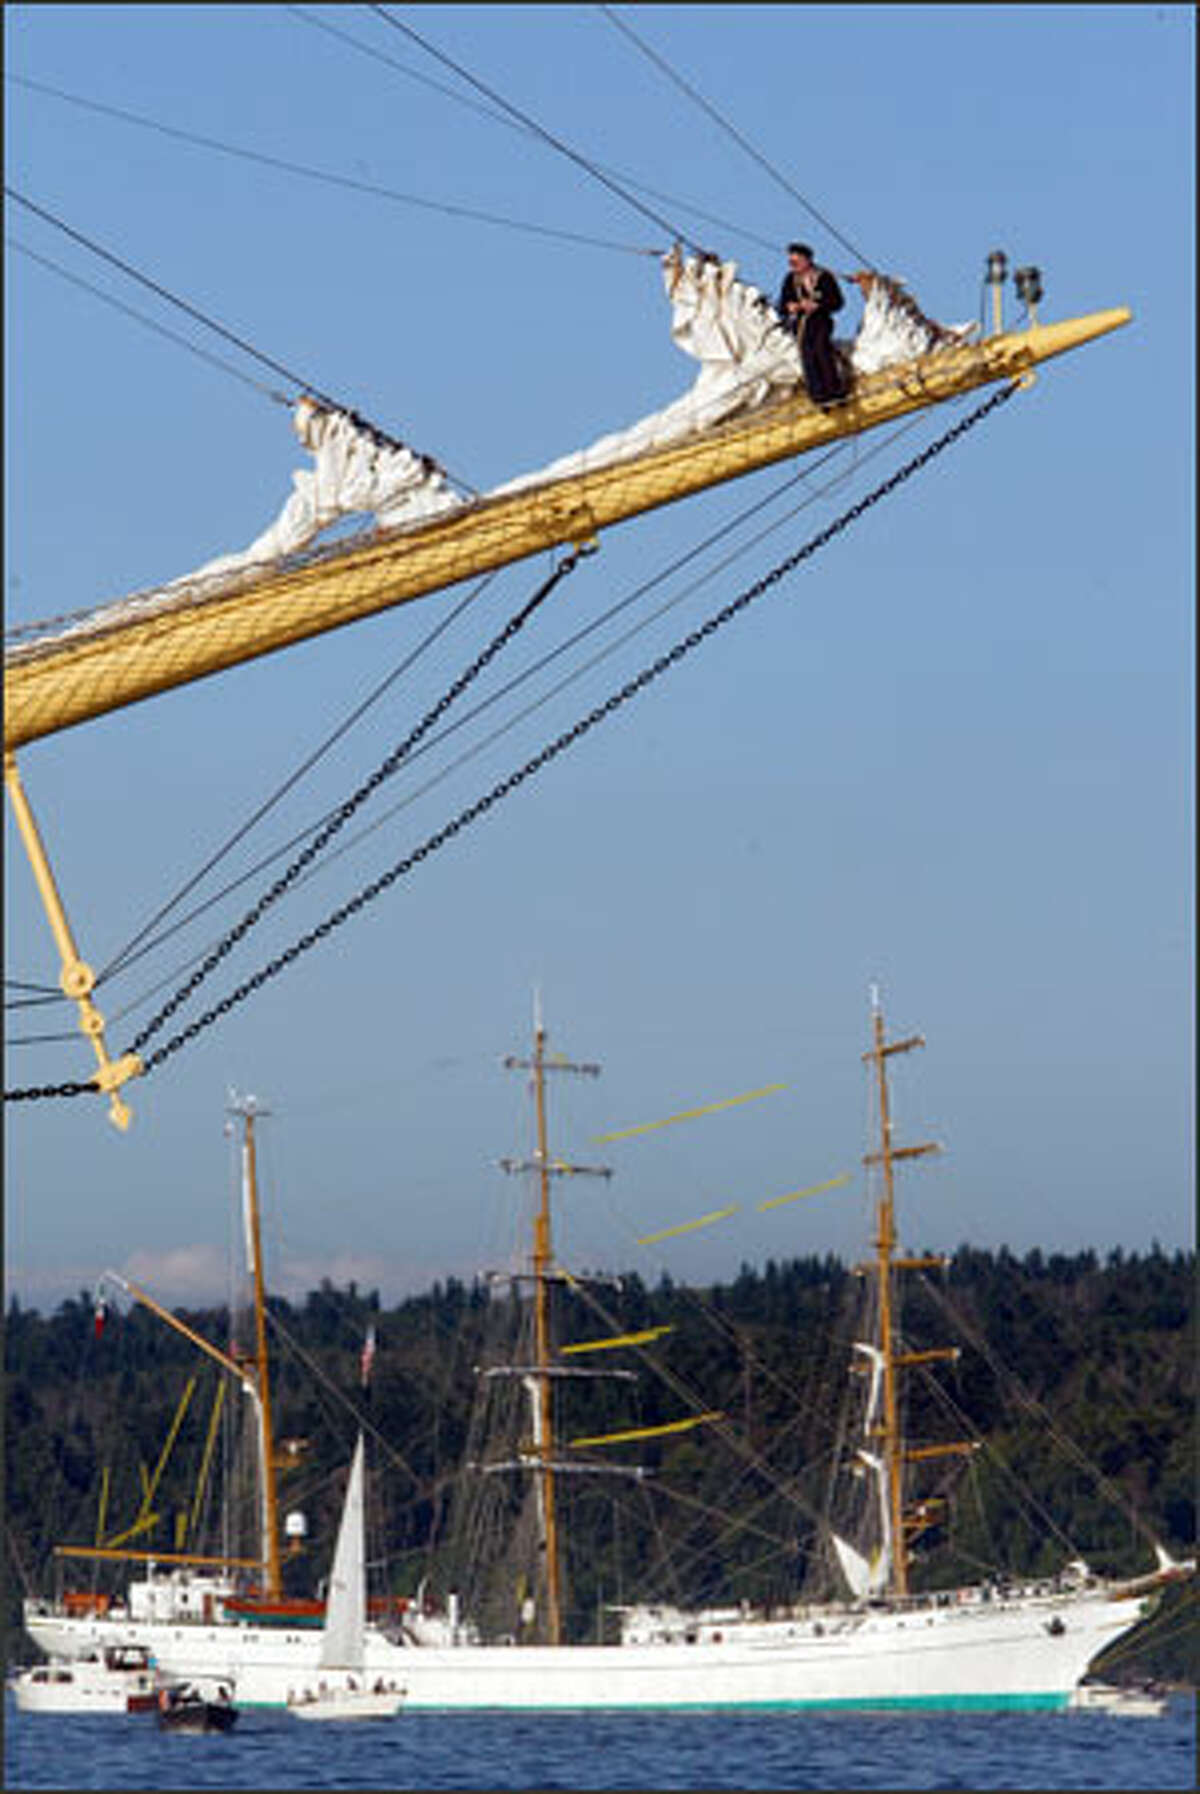 A Russian sailor stands on the bowsprit of the tall ship Pallada with the Mexican ship Cuauhtemoc in the background as the vessels anchor in the waters of Quartermaster Harbor at Vashon Island, in preparation for Tacoma's Tall Ships Festival.